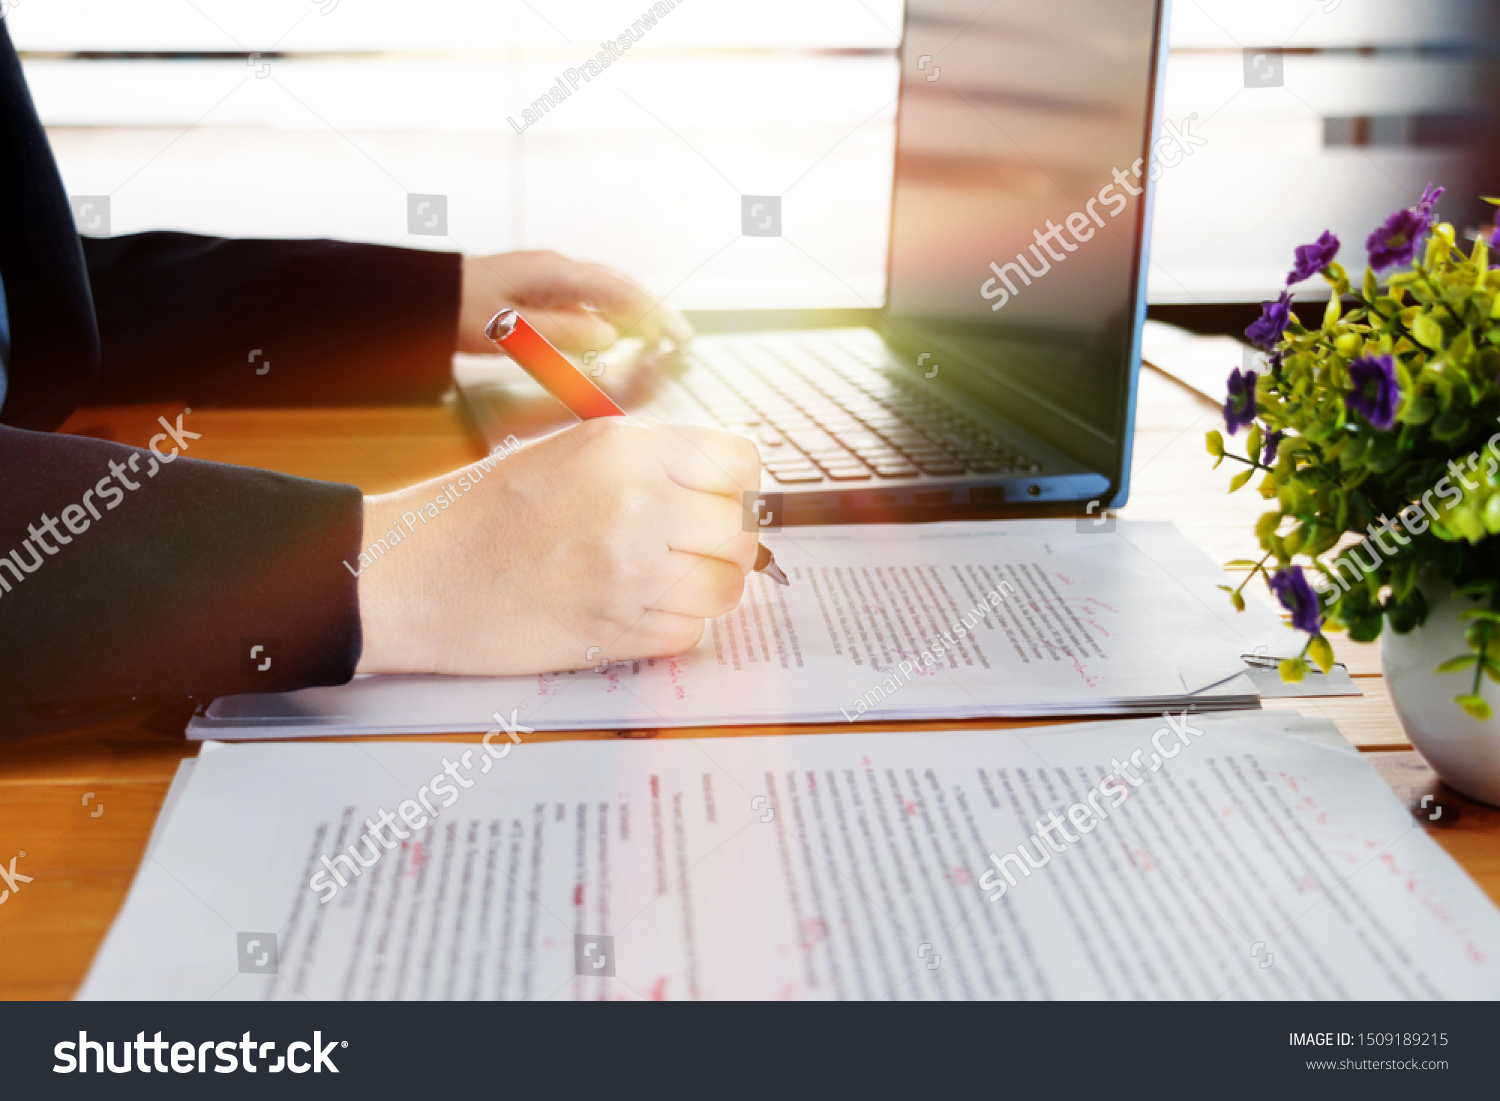 hand working on editing blur text on desk with laptop in office #1509189215